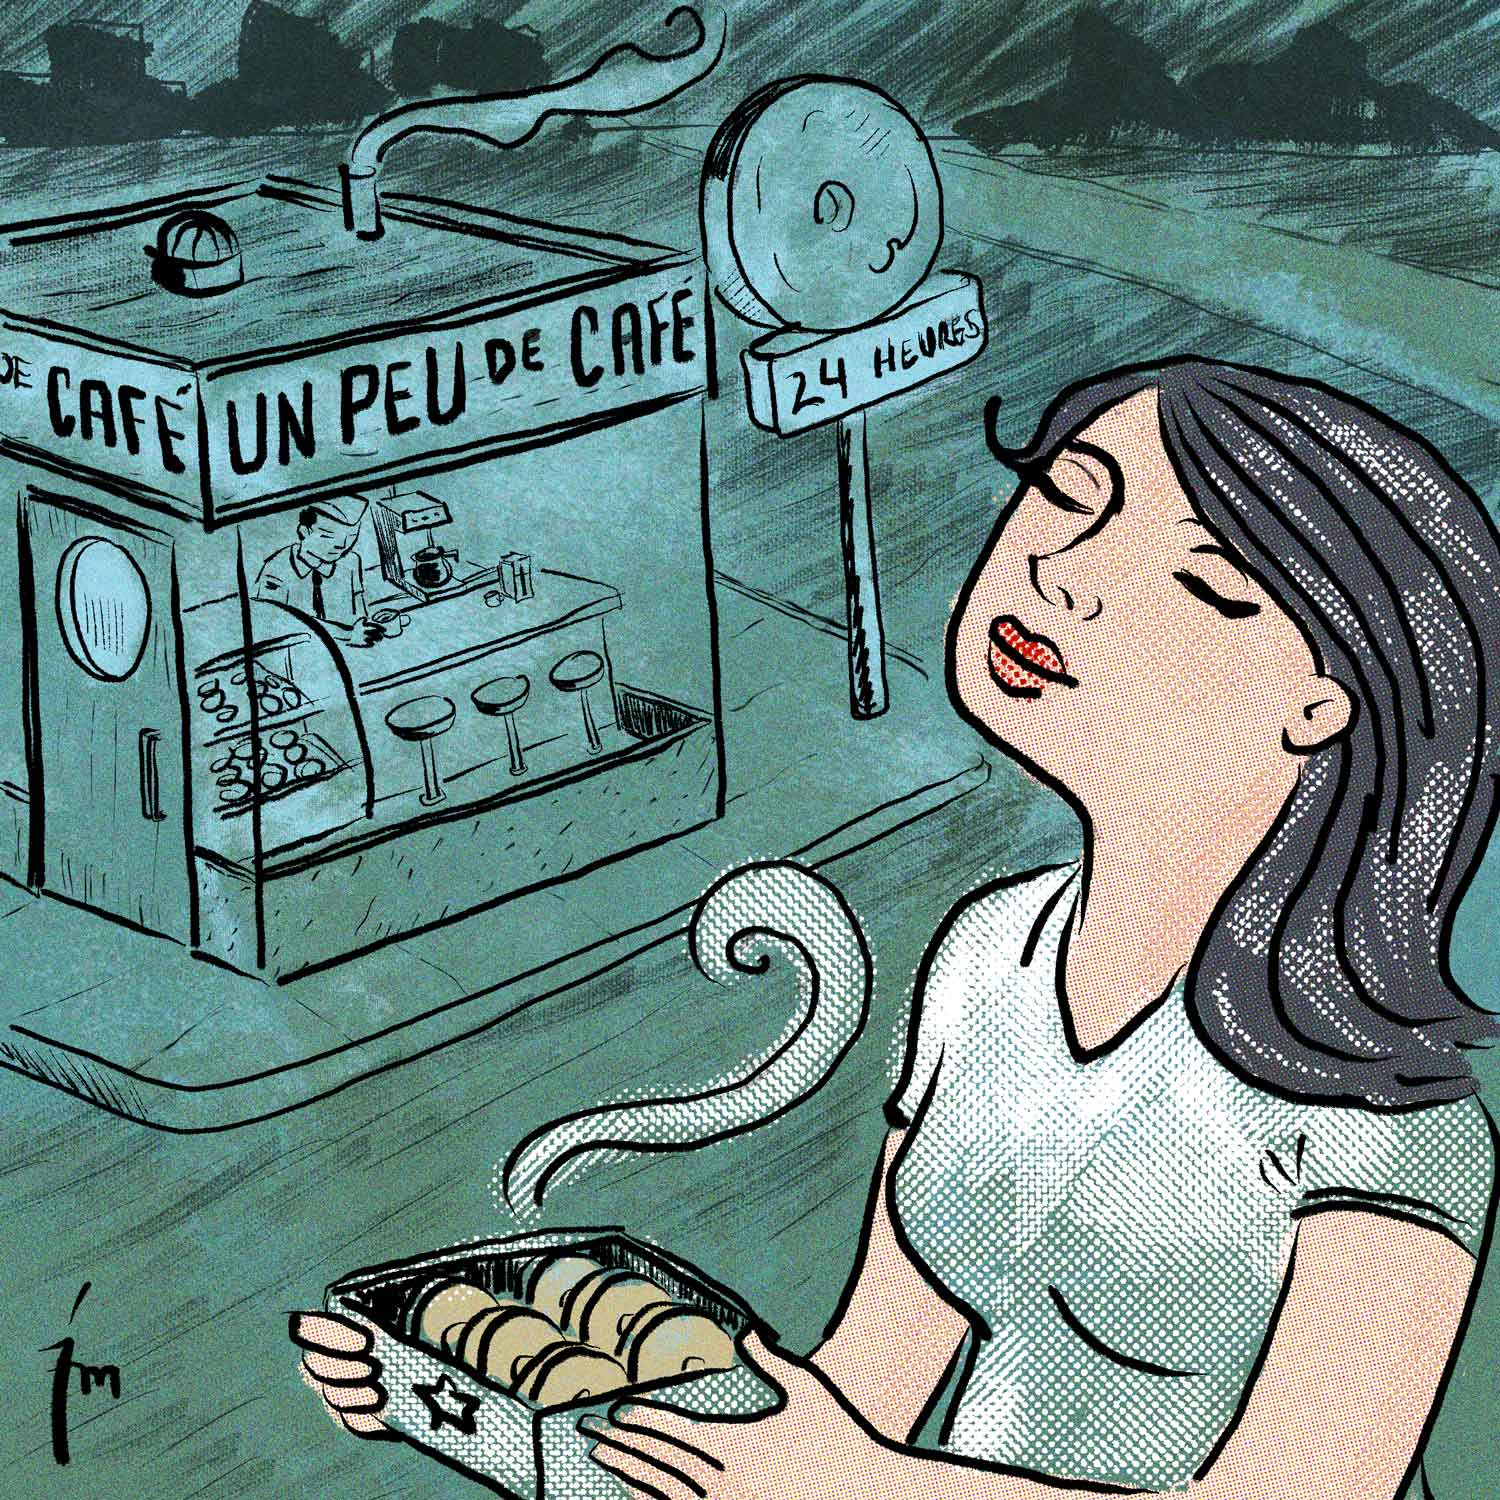 illustration titled: Un Peu De Cafe